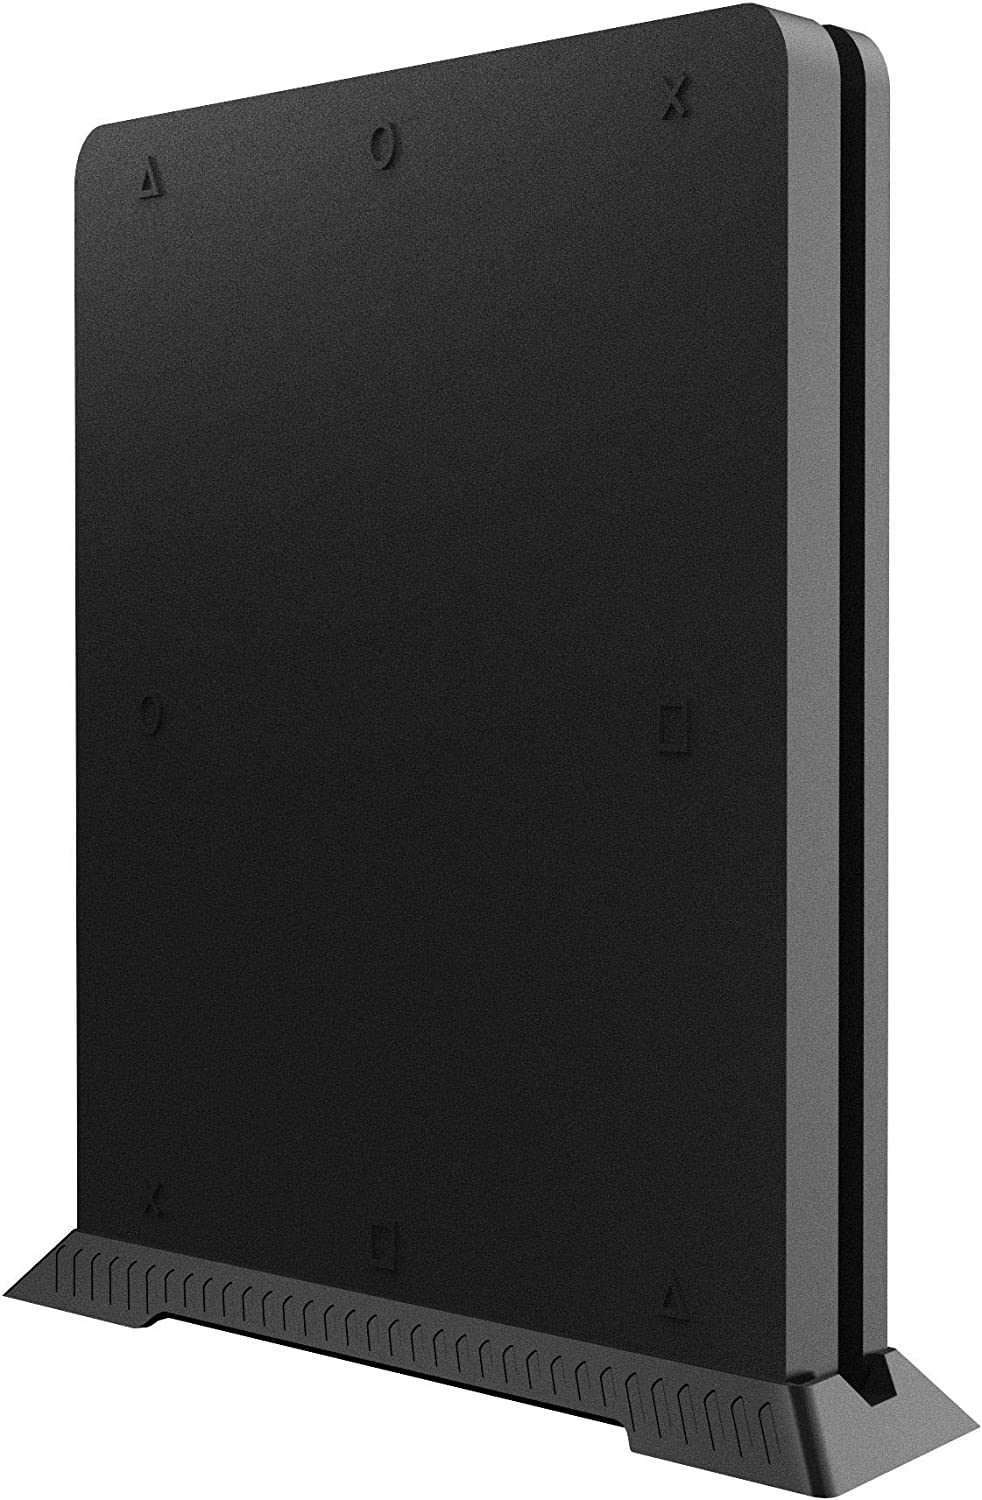 Kootek Vertical Stand for PS4 Slim with Airflow Vents /& Non Slip Feets Steady /& Space Saving Playstation 4 Slim Console Mounts for Table Desk